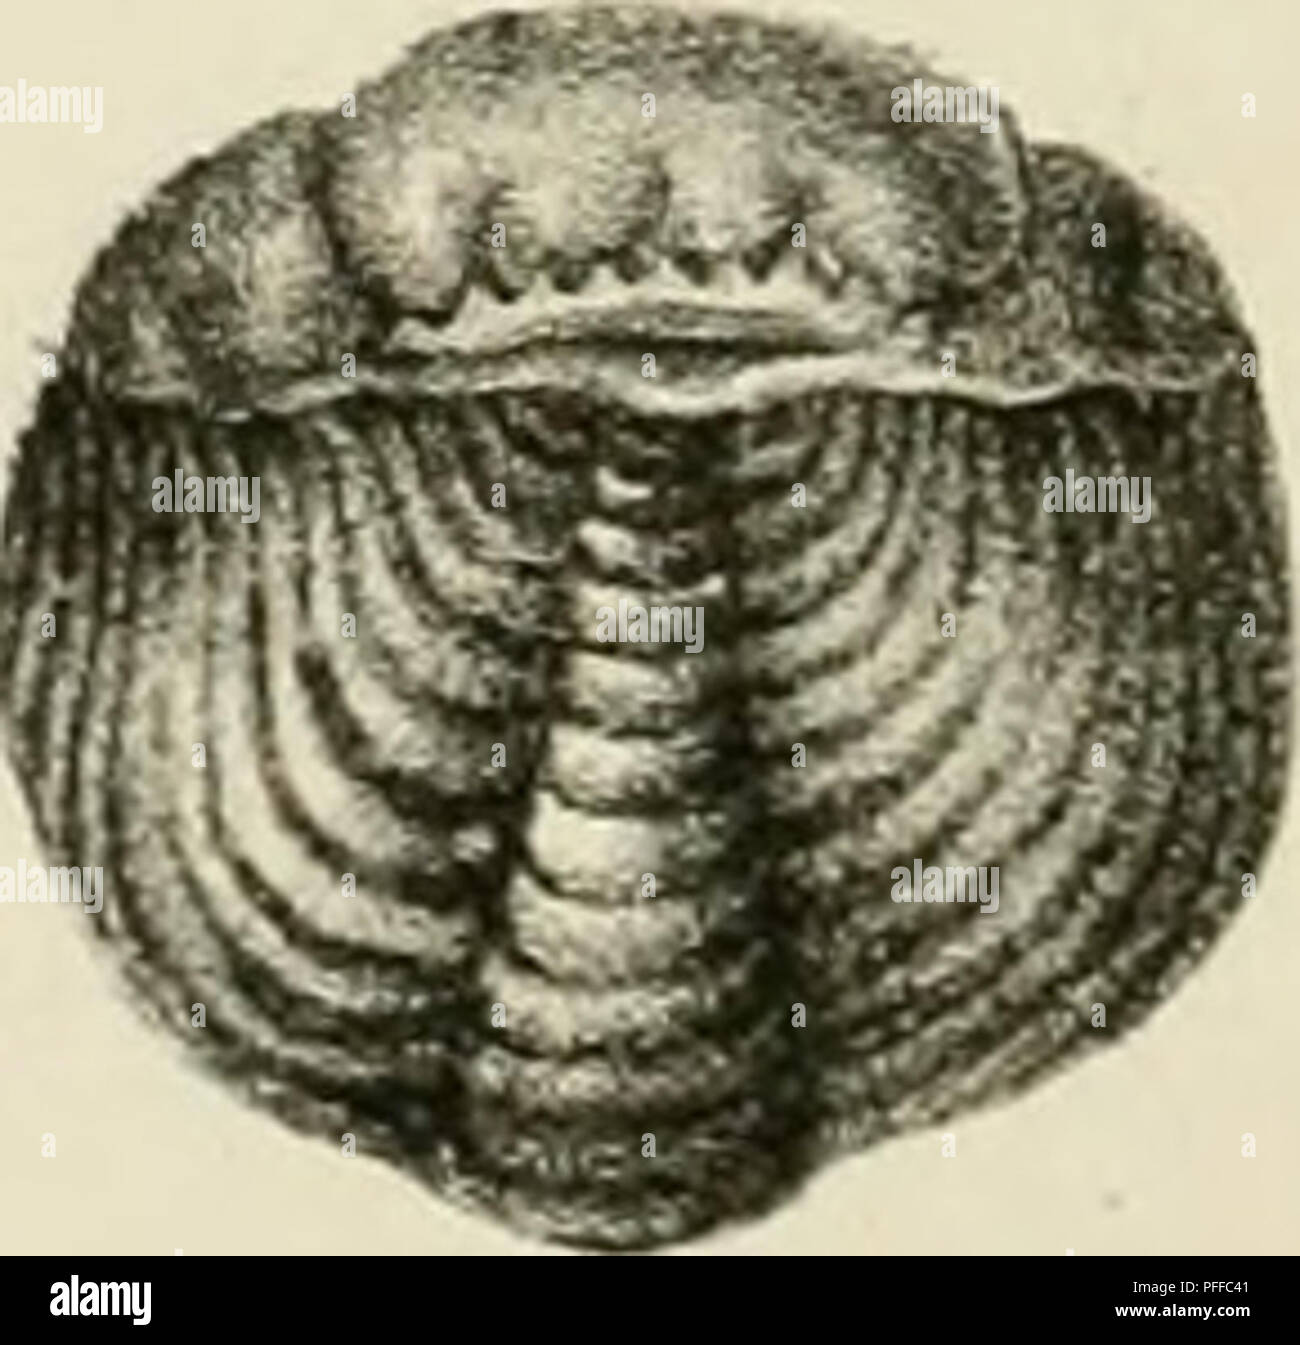 . D. Eduardi Eichwaldi, publ. ord. apud Casanens. Profess. Acad. Caes. Nat. Cur. Leop. Carol. mult. Societ. Liter. Socii, Geognostico-zoologicae per ingriam marisque Baltici provincias nec non de trilobitis observationes. Geology; Zoology; Paleontology. /â /a Q.. />.. ^^^â aof. ,'70**j. Please note that these images are extracted from scanned page images that may have been digitally enhanced for readability - coloration and appearance of these illustrations may not perfectly resemble the original work.. Eichwald, Carl Eduard von, 1795-1876; Kazanski universitet. Casani : Typis Universitatis - Stock Image